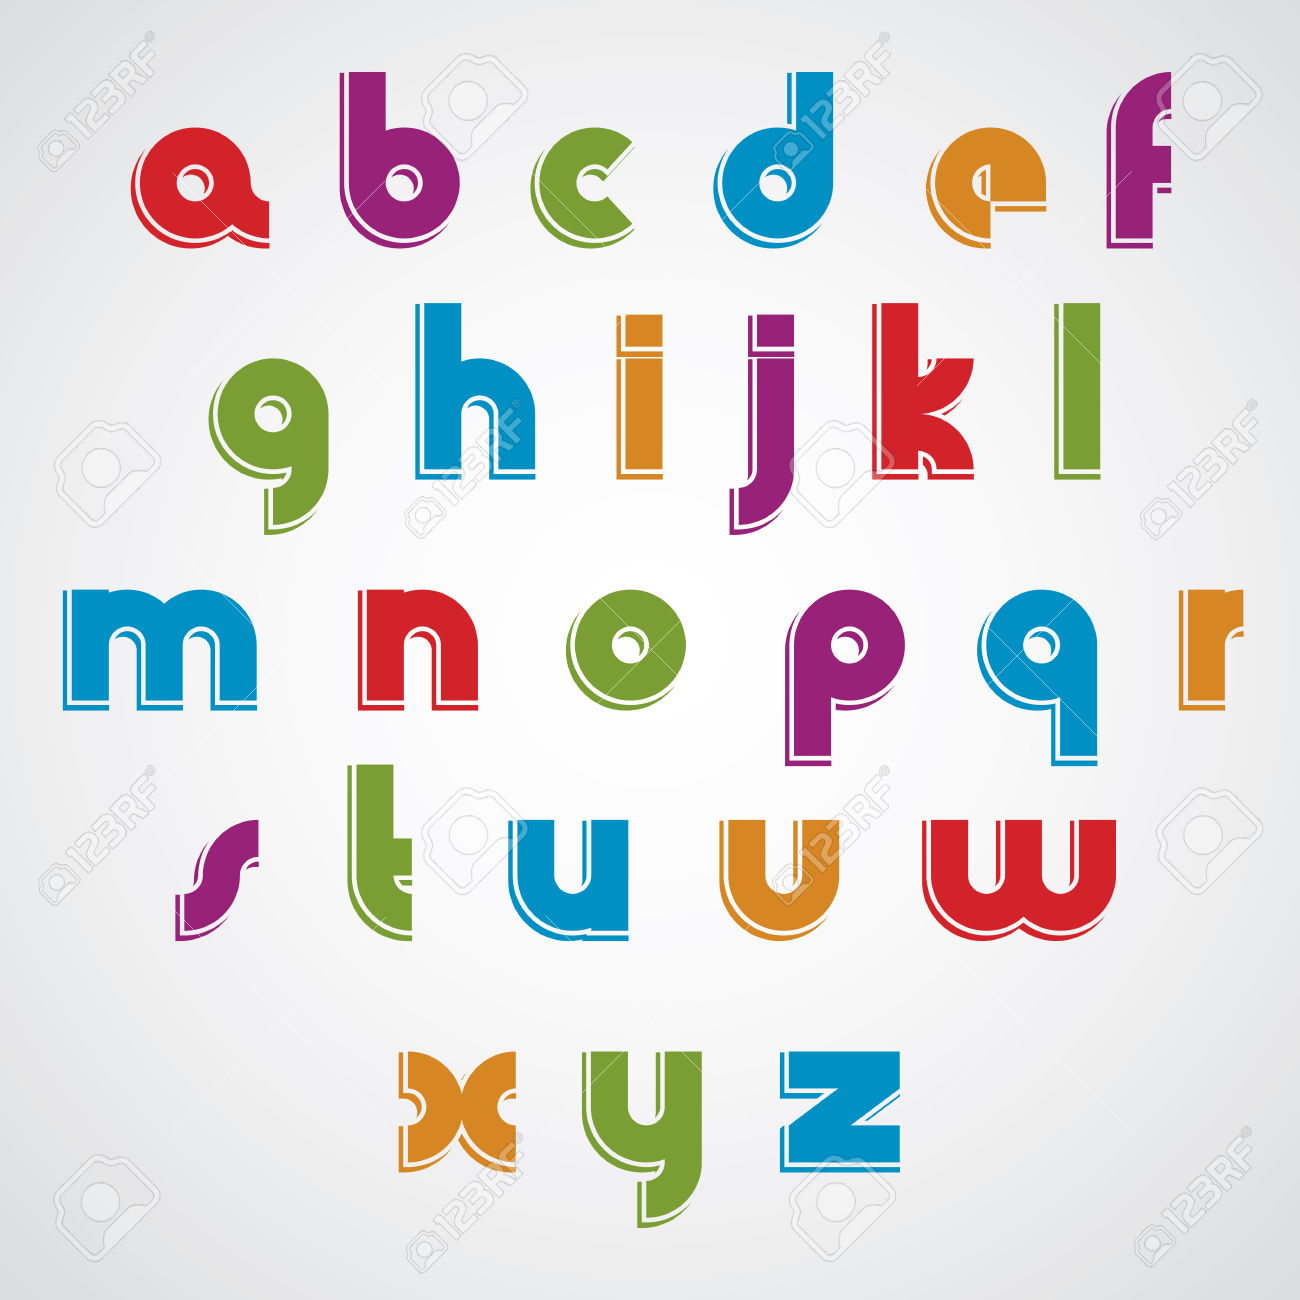 Clipart lower case letters clipart transparent library Colorful Cartoon Smooth Font, Rounded Lowercase Letters With ... clipart transparent library